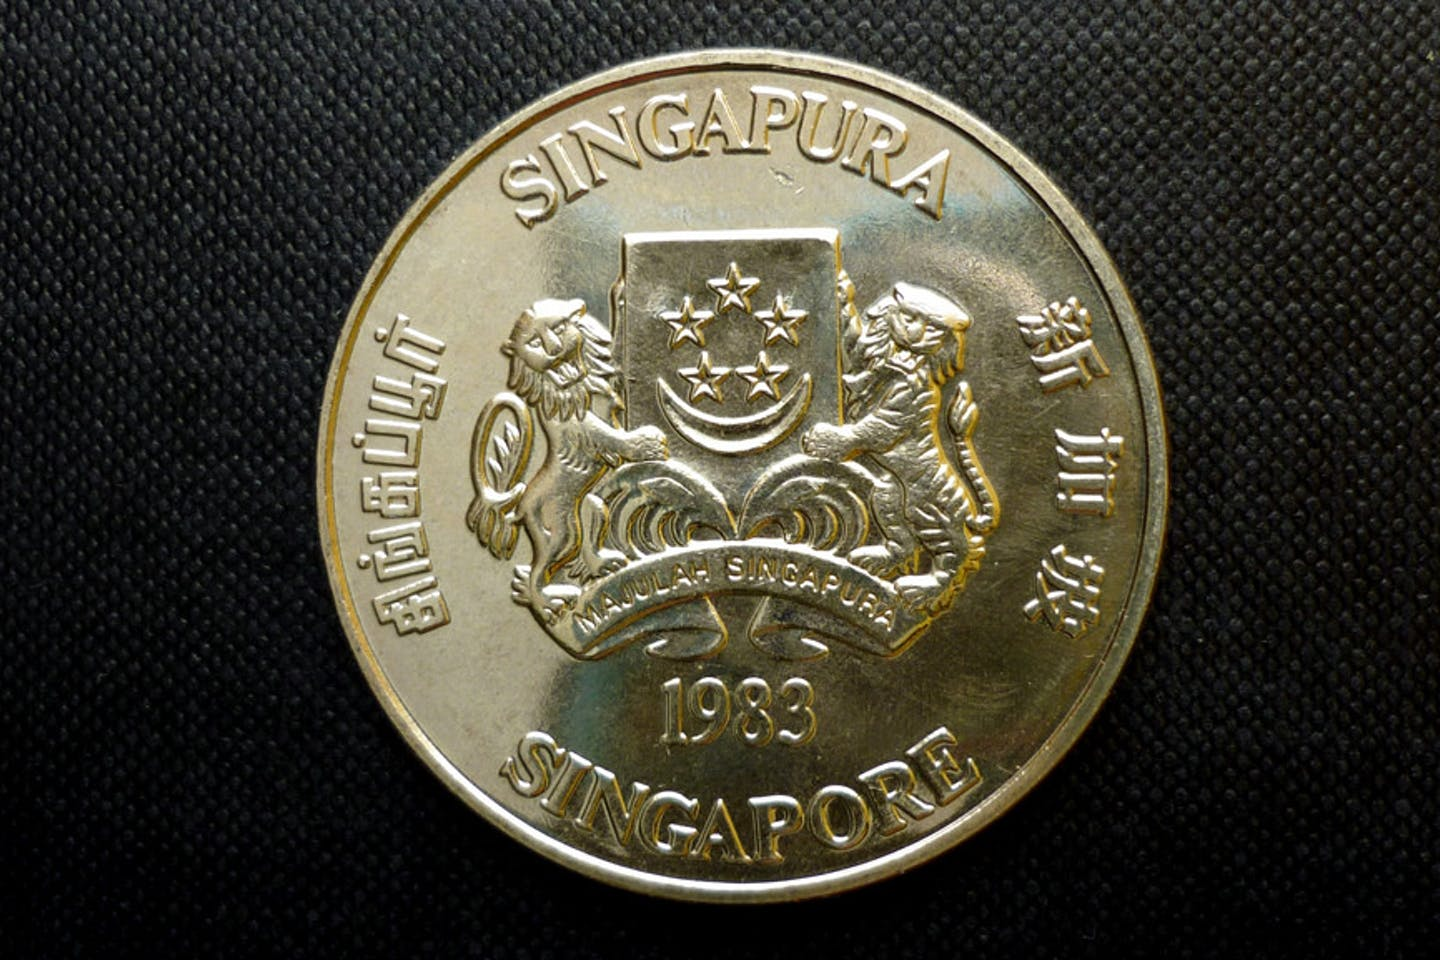 A singapore coin minted in 1983